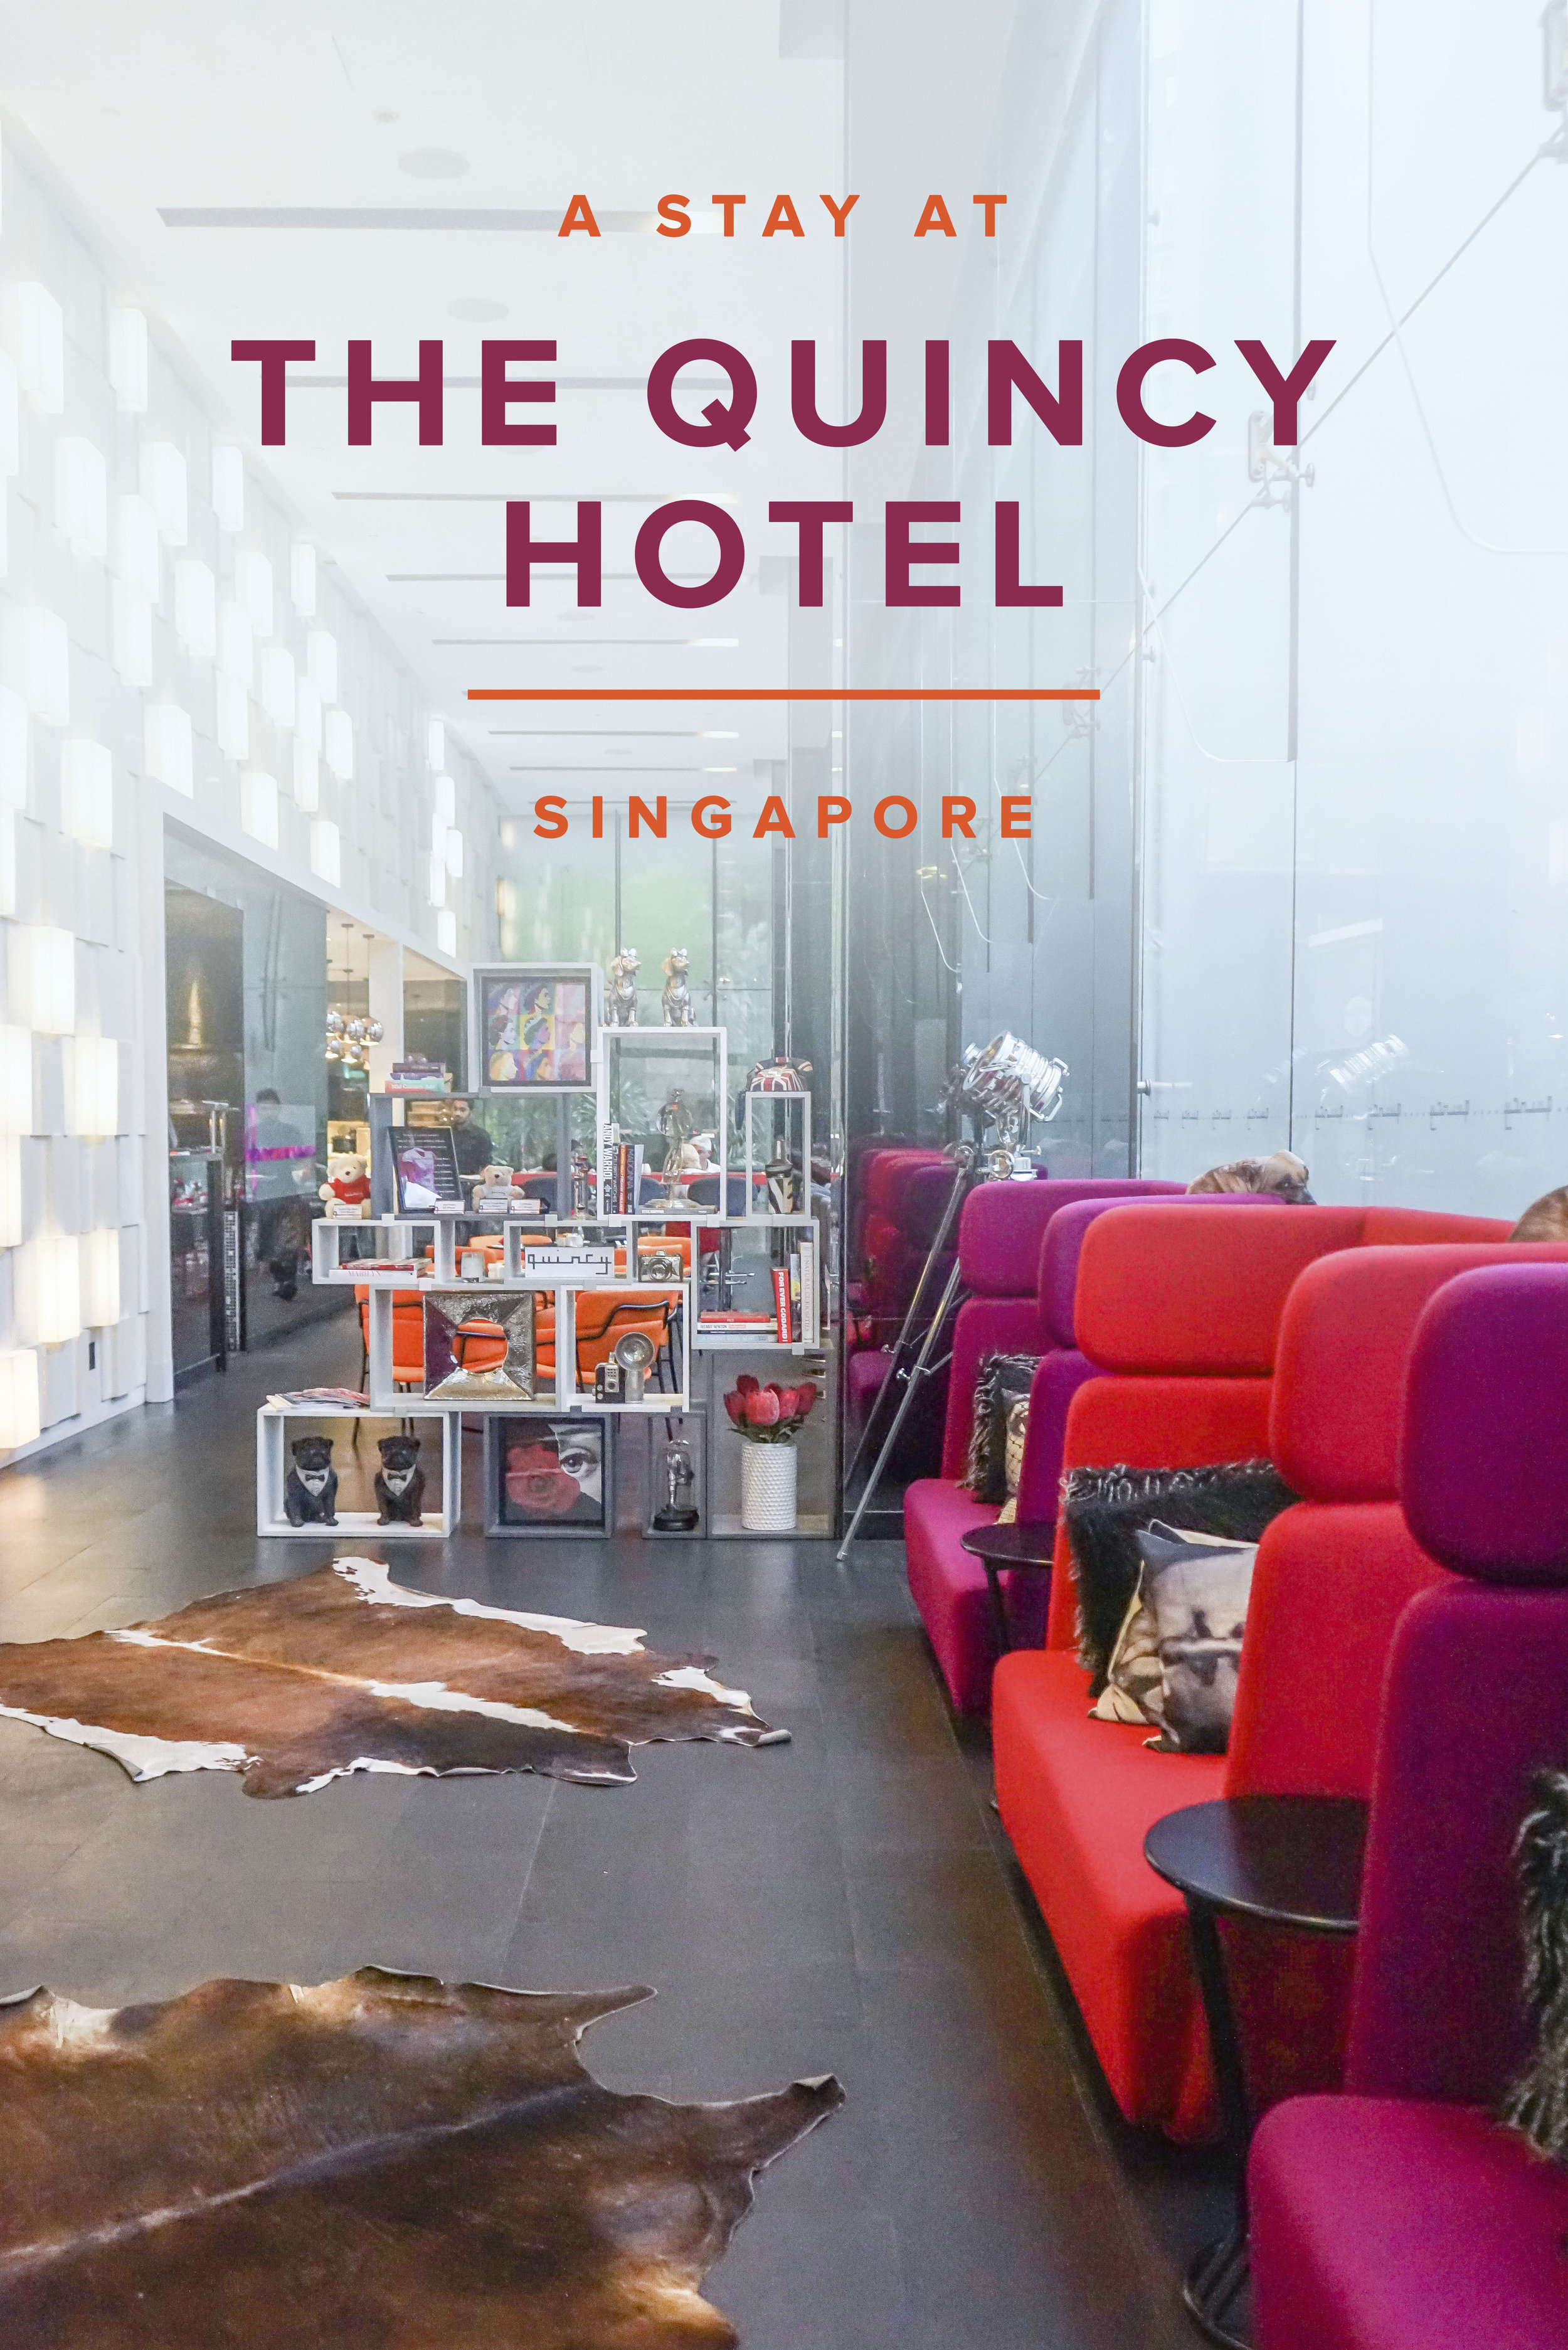 The Quincy Hotel, Singapore, Asia